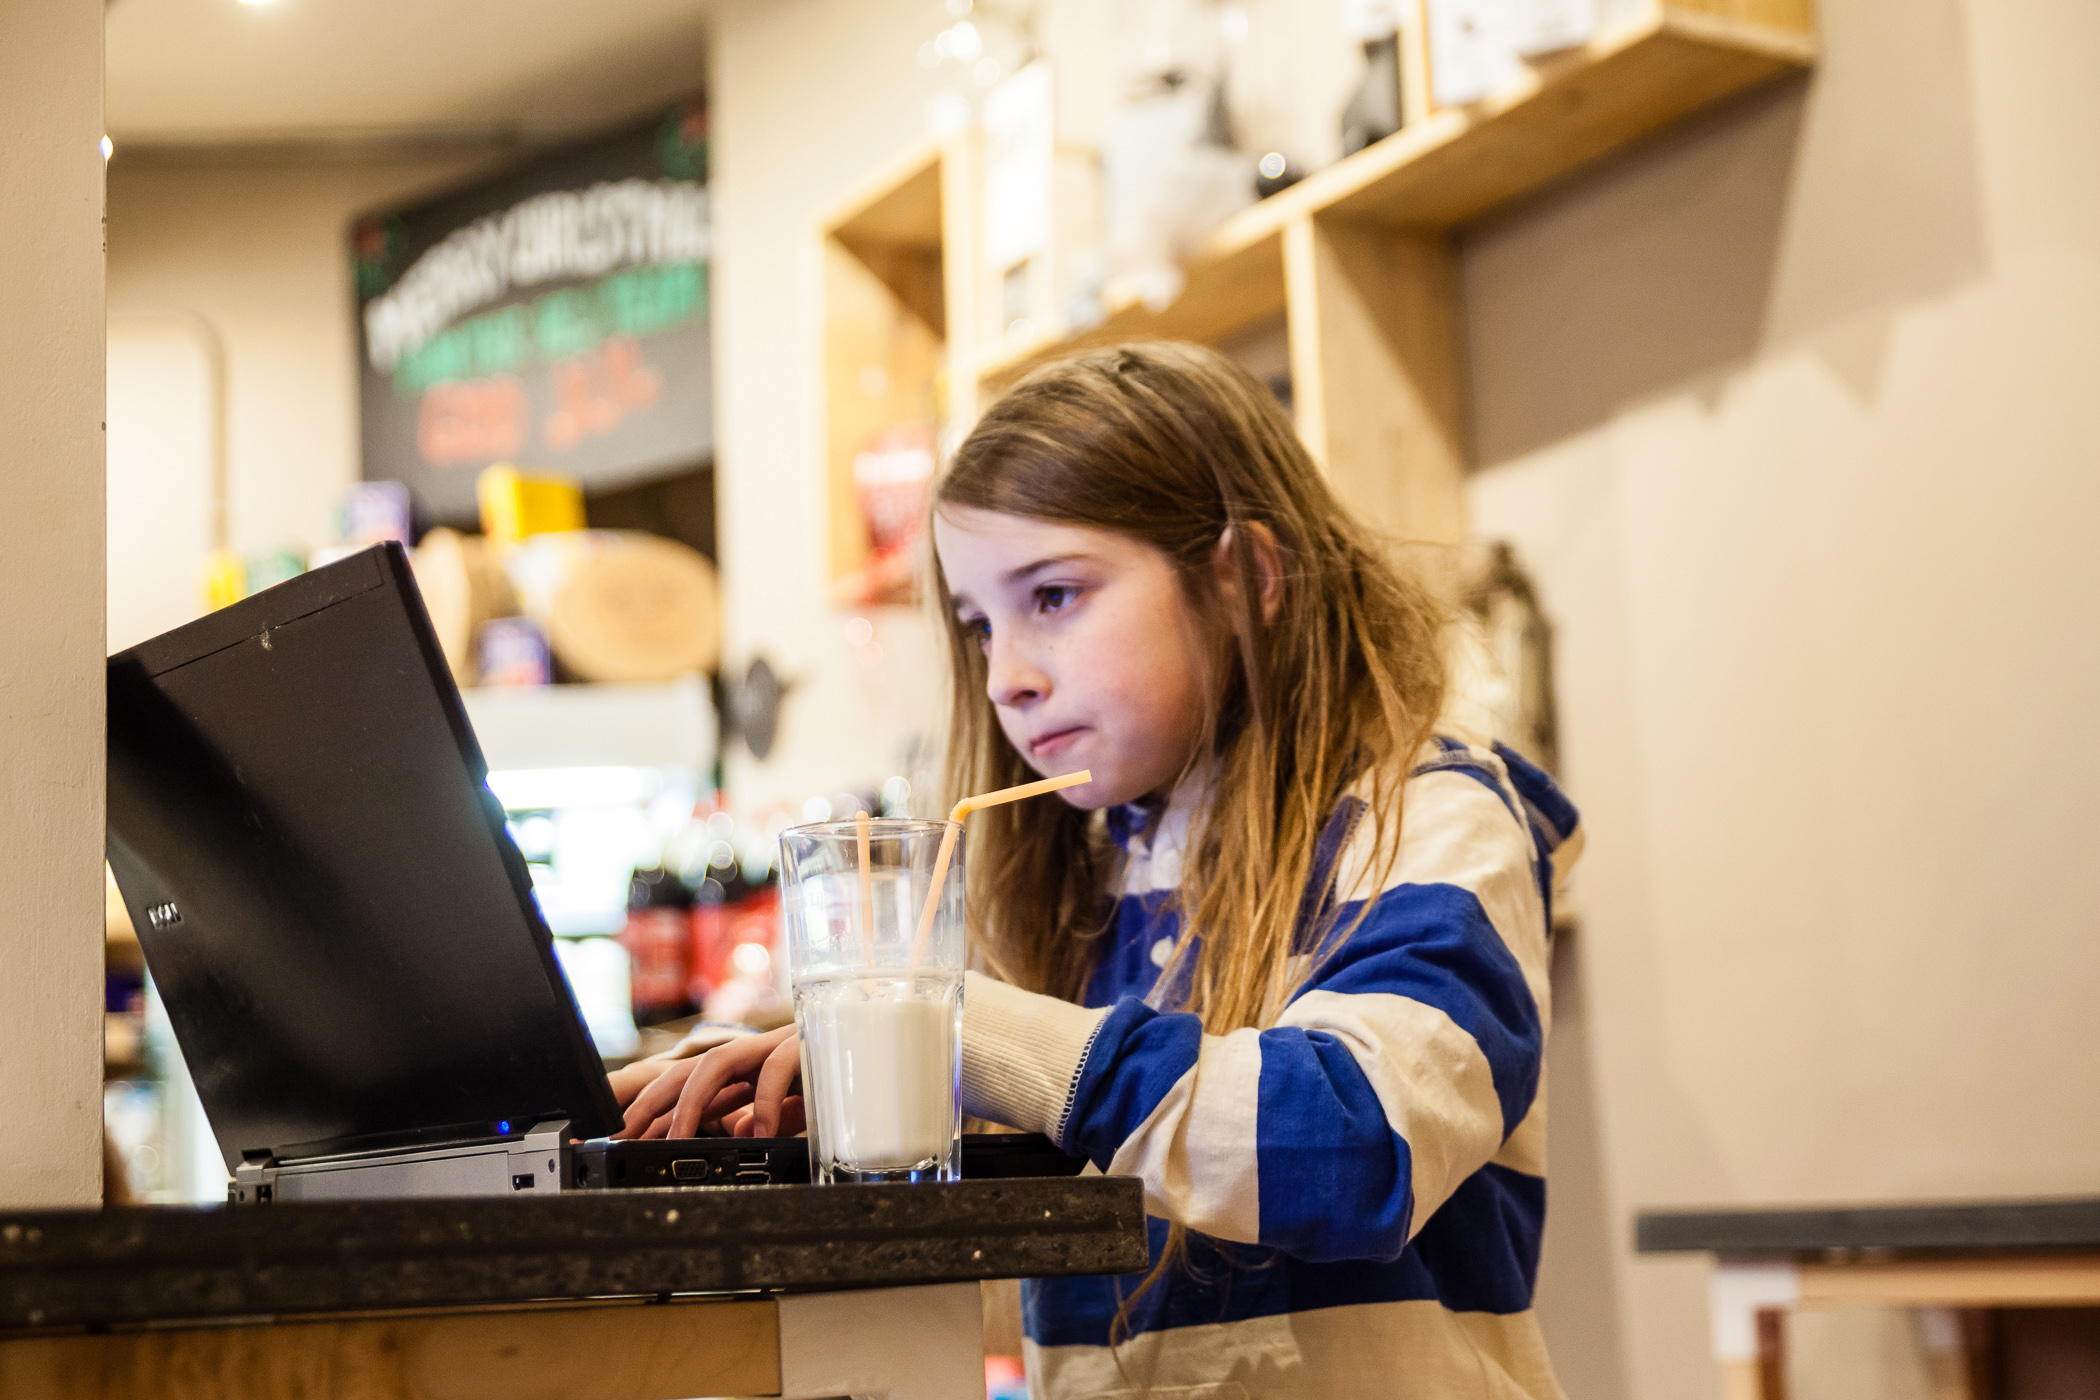 How a 7-year-old girl hacked a public Wi-Fi network in 10